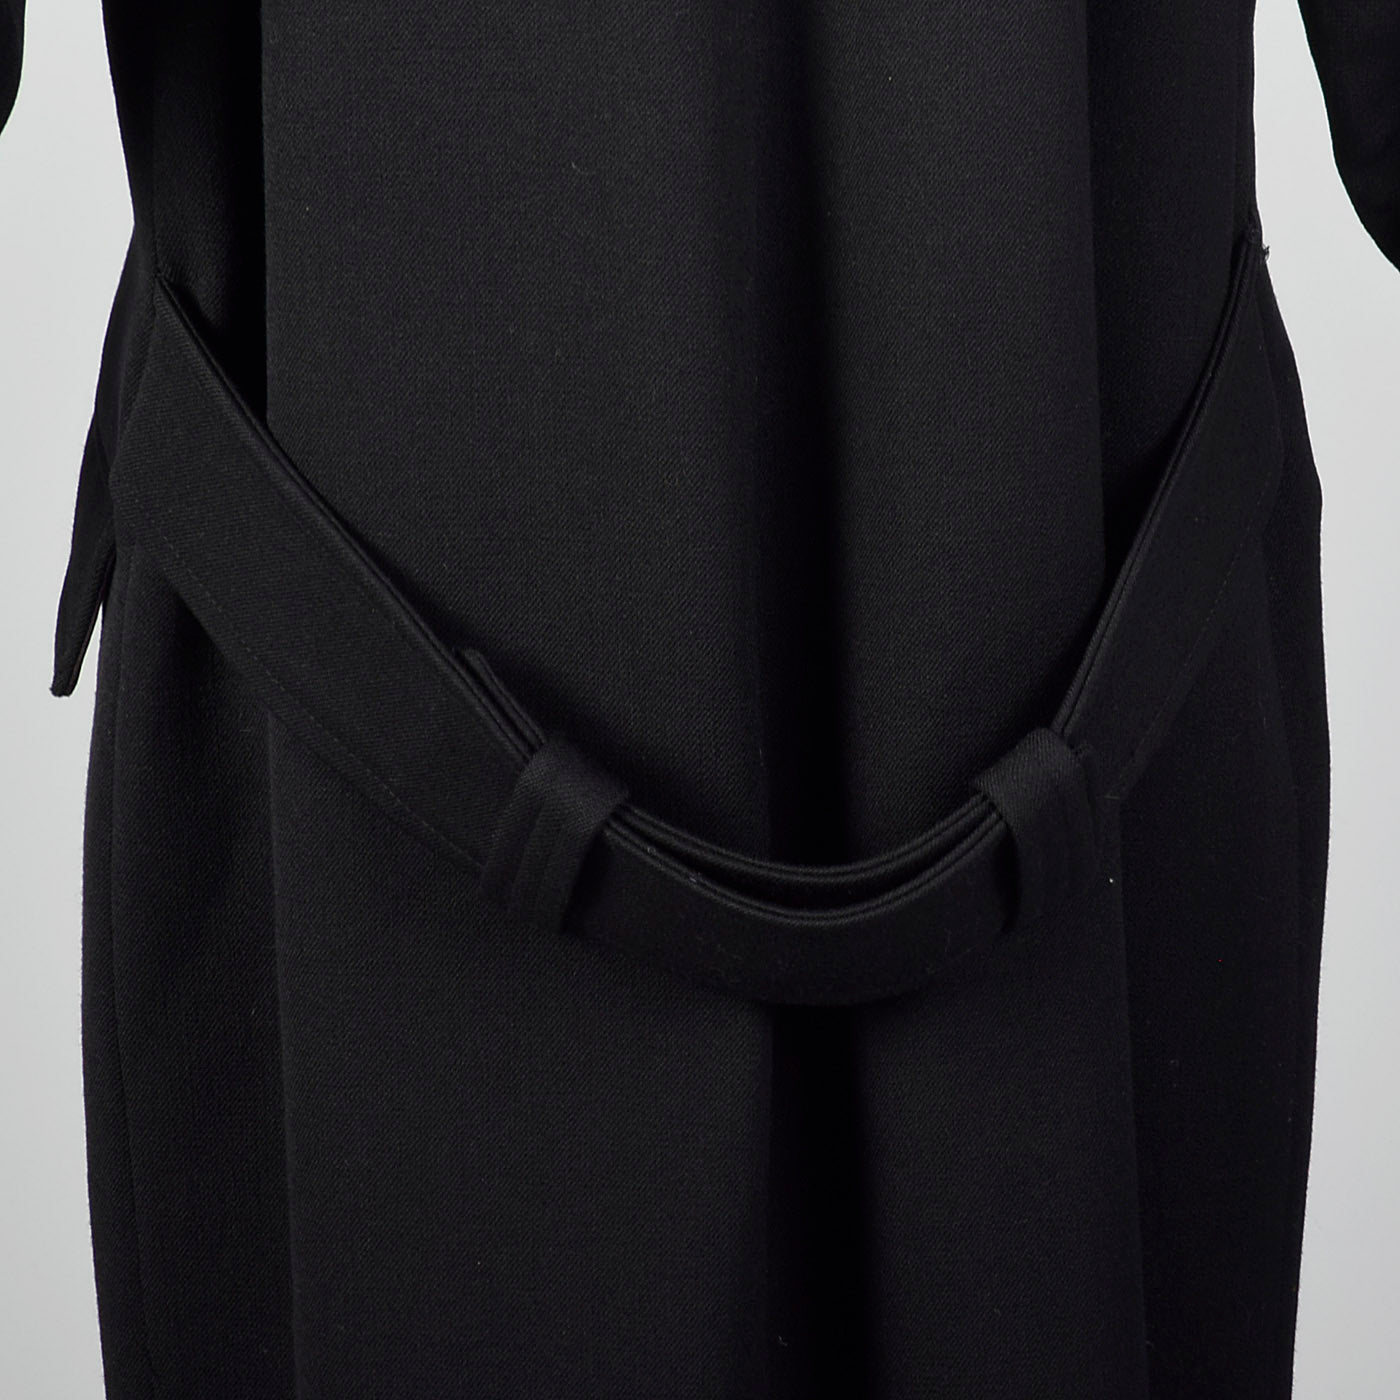 1980s Bill Blass Long Black Overcoat with Convertible Pockets